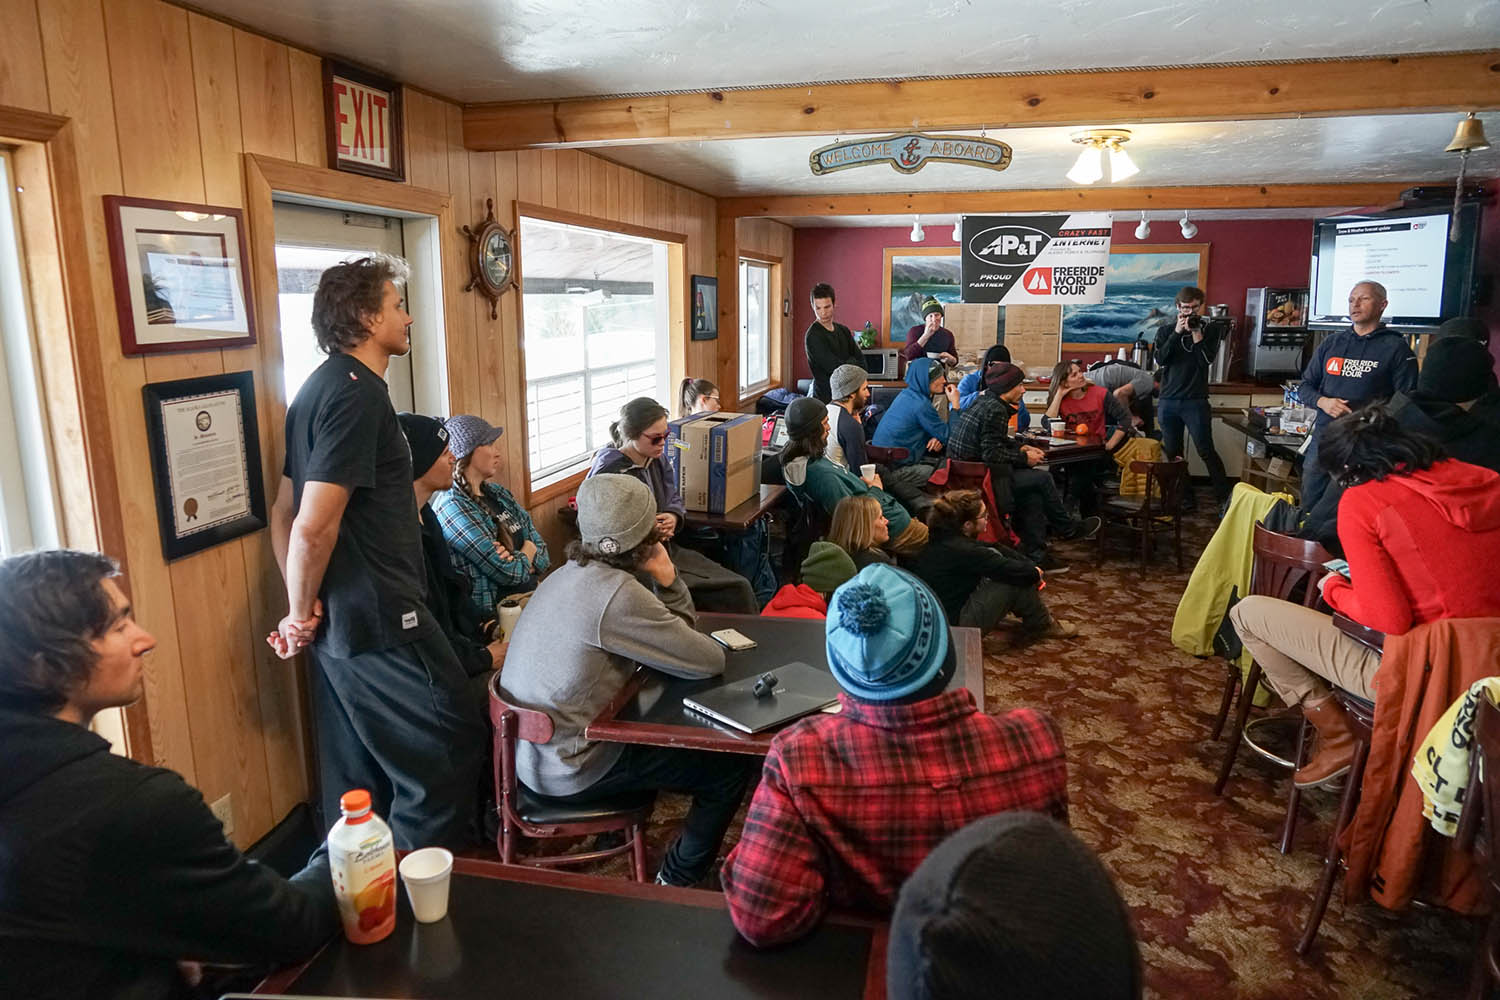 Rider's Meeting im Hotel Captain's Choice in Haines